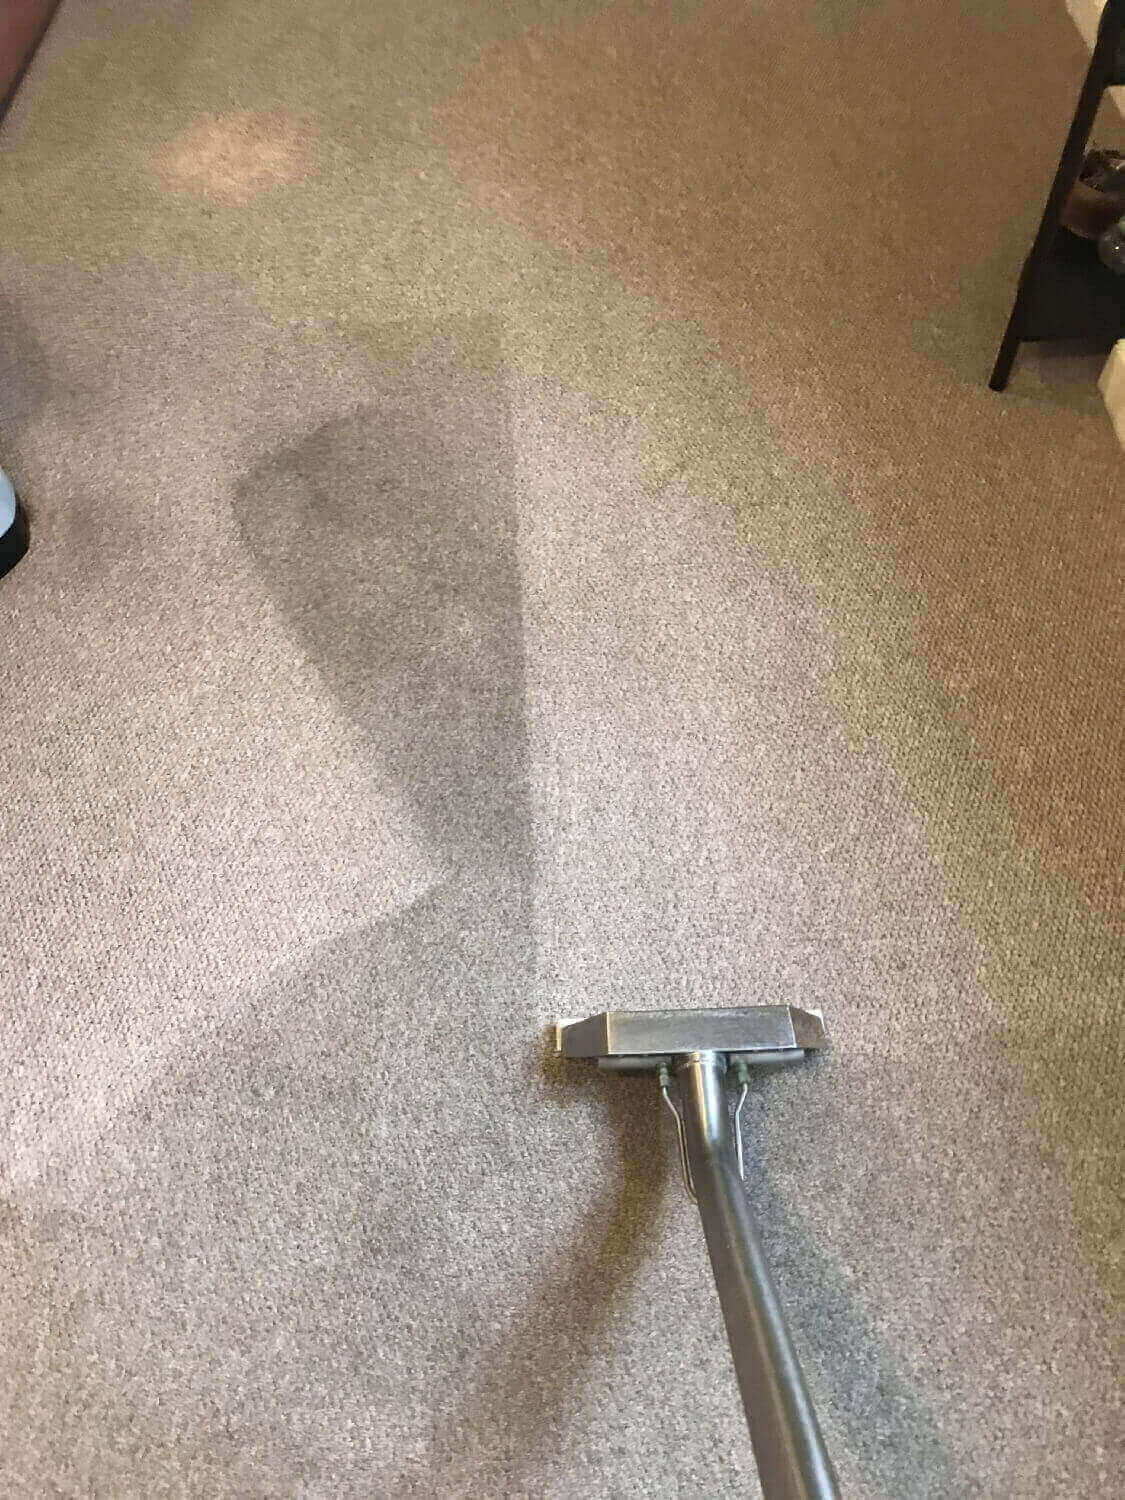 Residential Carpet Cleaning Leamington Spa